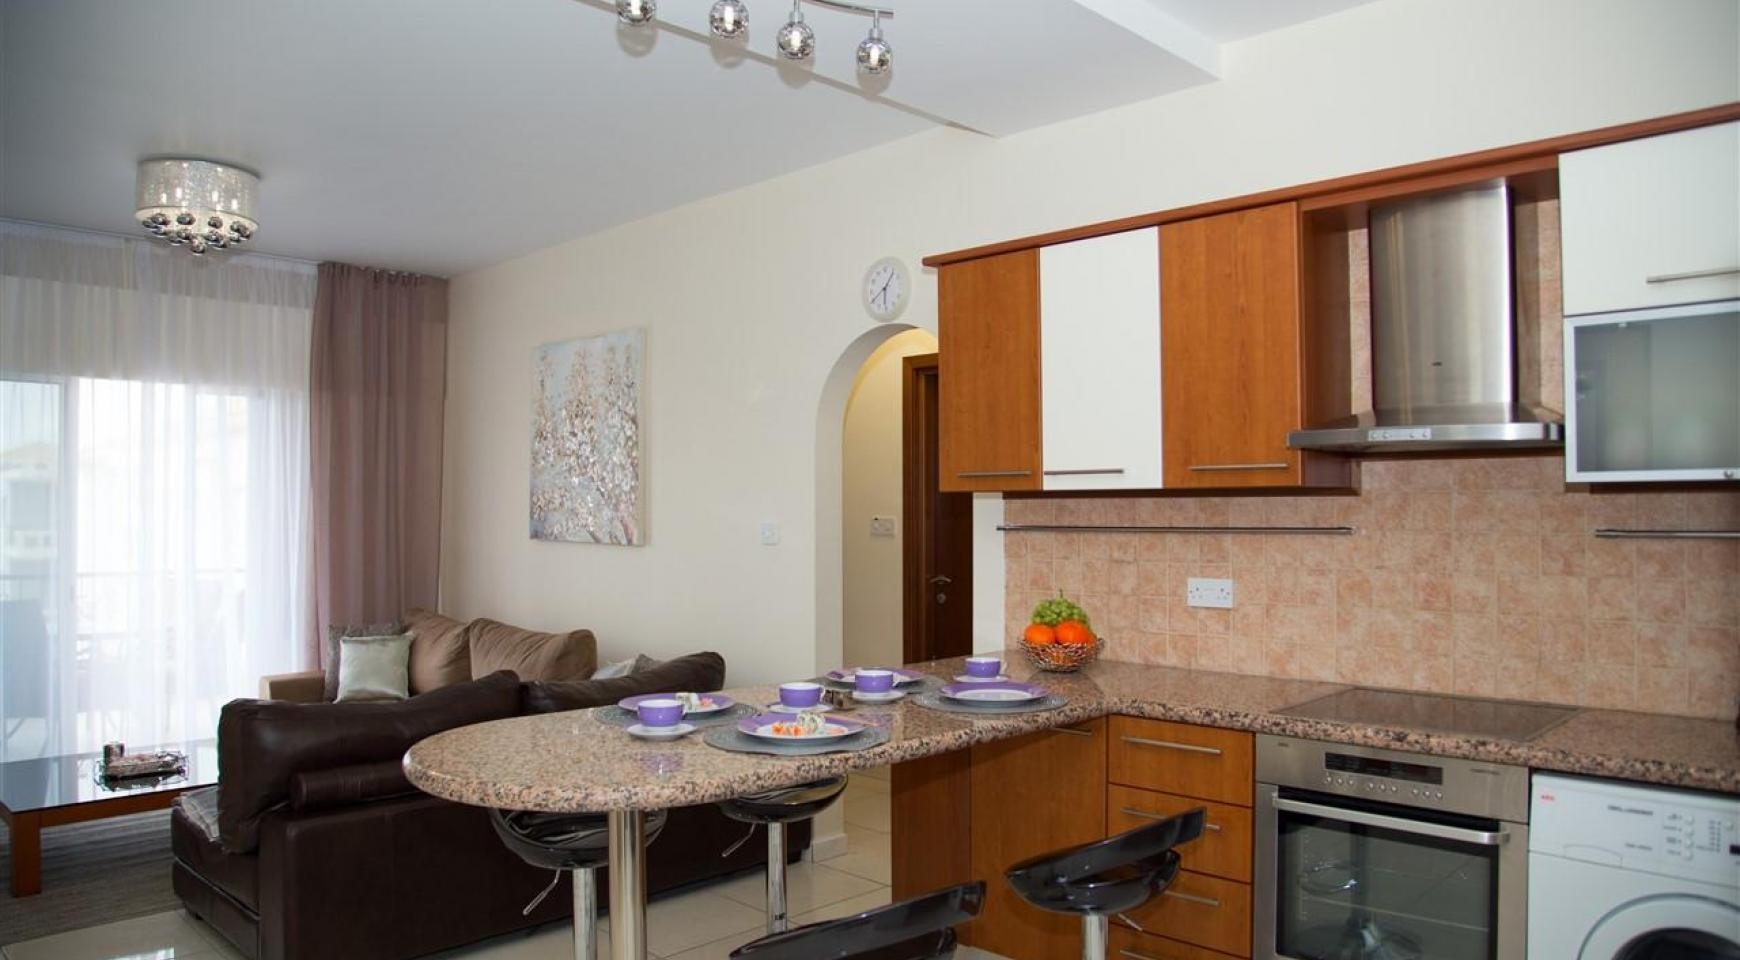 Luxury 2 Bedroom Apartment Mesogios Iris 304 in the Tourist area near the Beach - 9